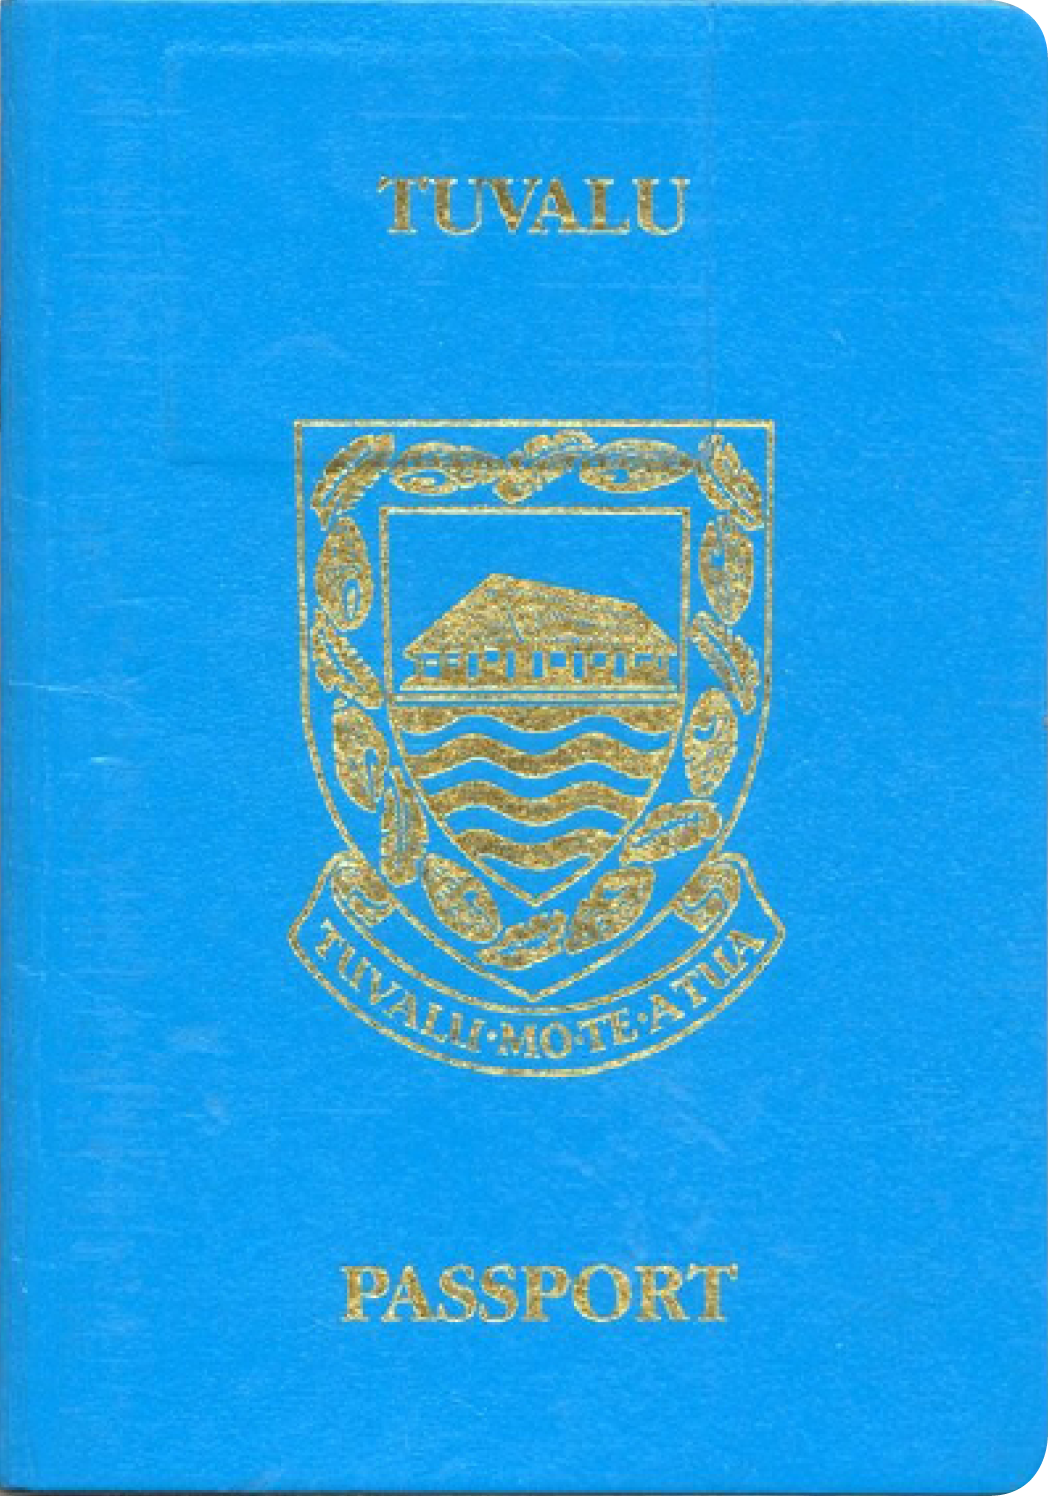 A regular or ordinary tuvalu passport - Front side